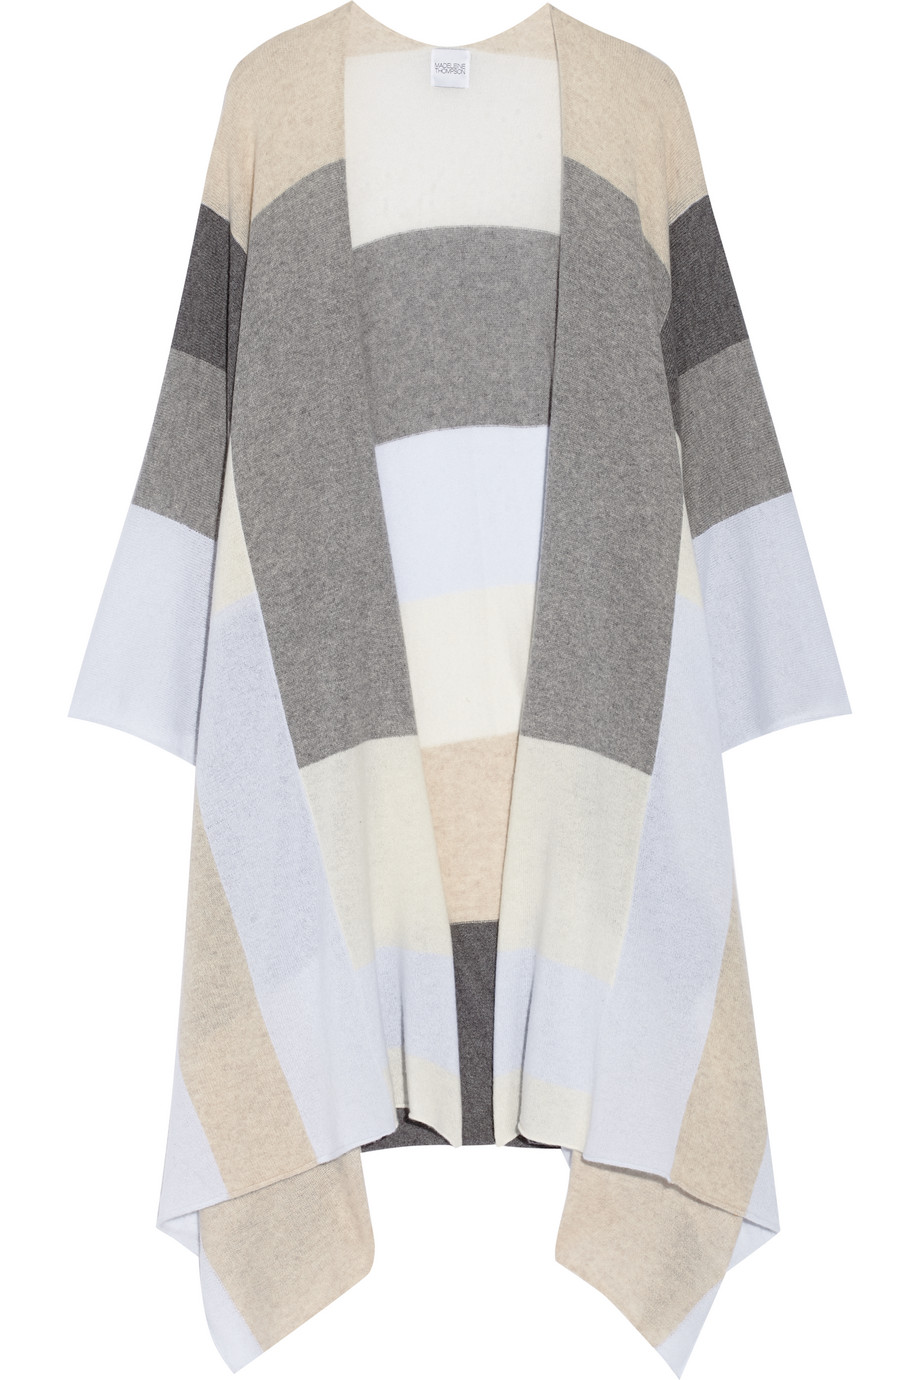 Color-Block Cashmere Wrap, Madeleine Thompson, Gray, Women's